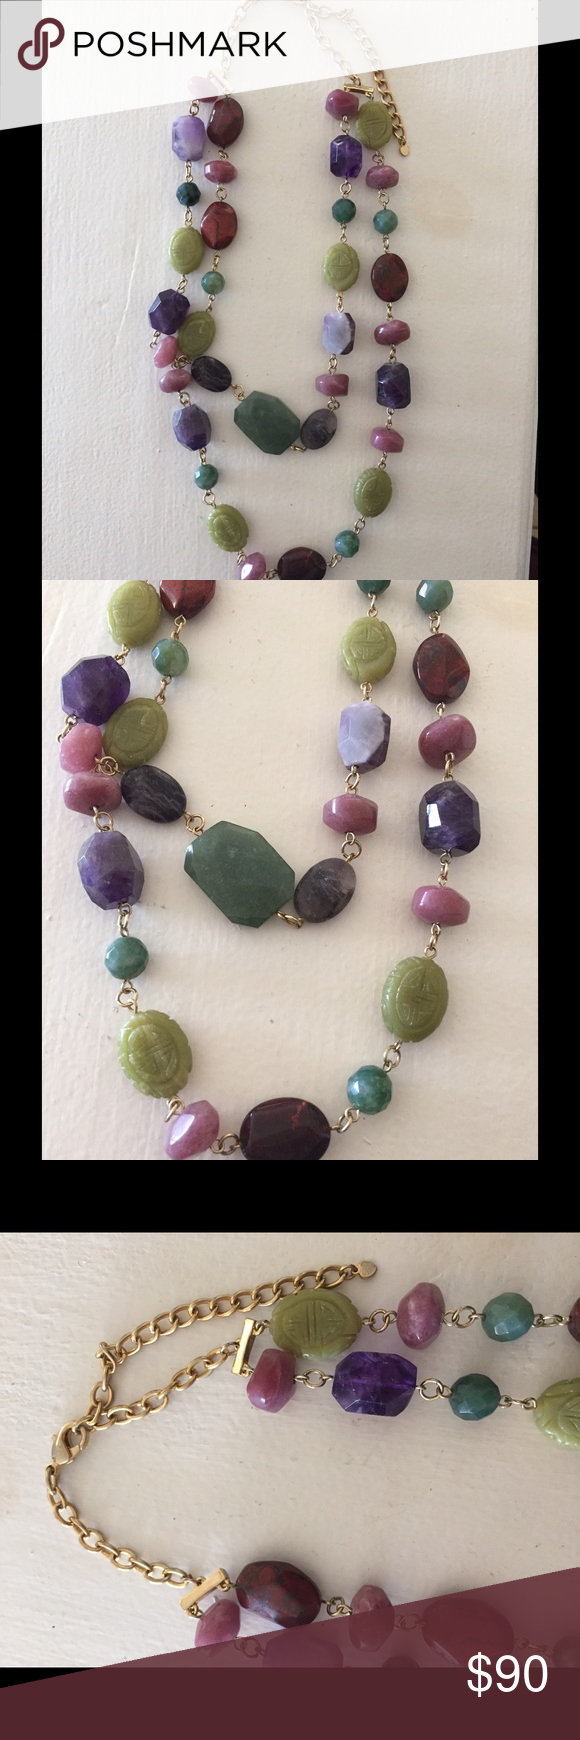 NEW + RARE Anthropologie stone layered necklace BRAND NEW! Never worn, in perfect shape. This is a RARE and valuable necklace from Anthropologie. I am willing to accept offers but they need to be reasonable. RETAIL was $188 Anthropologie Jewelry Necklaces